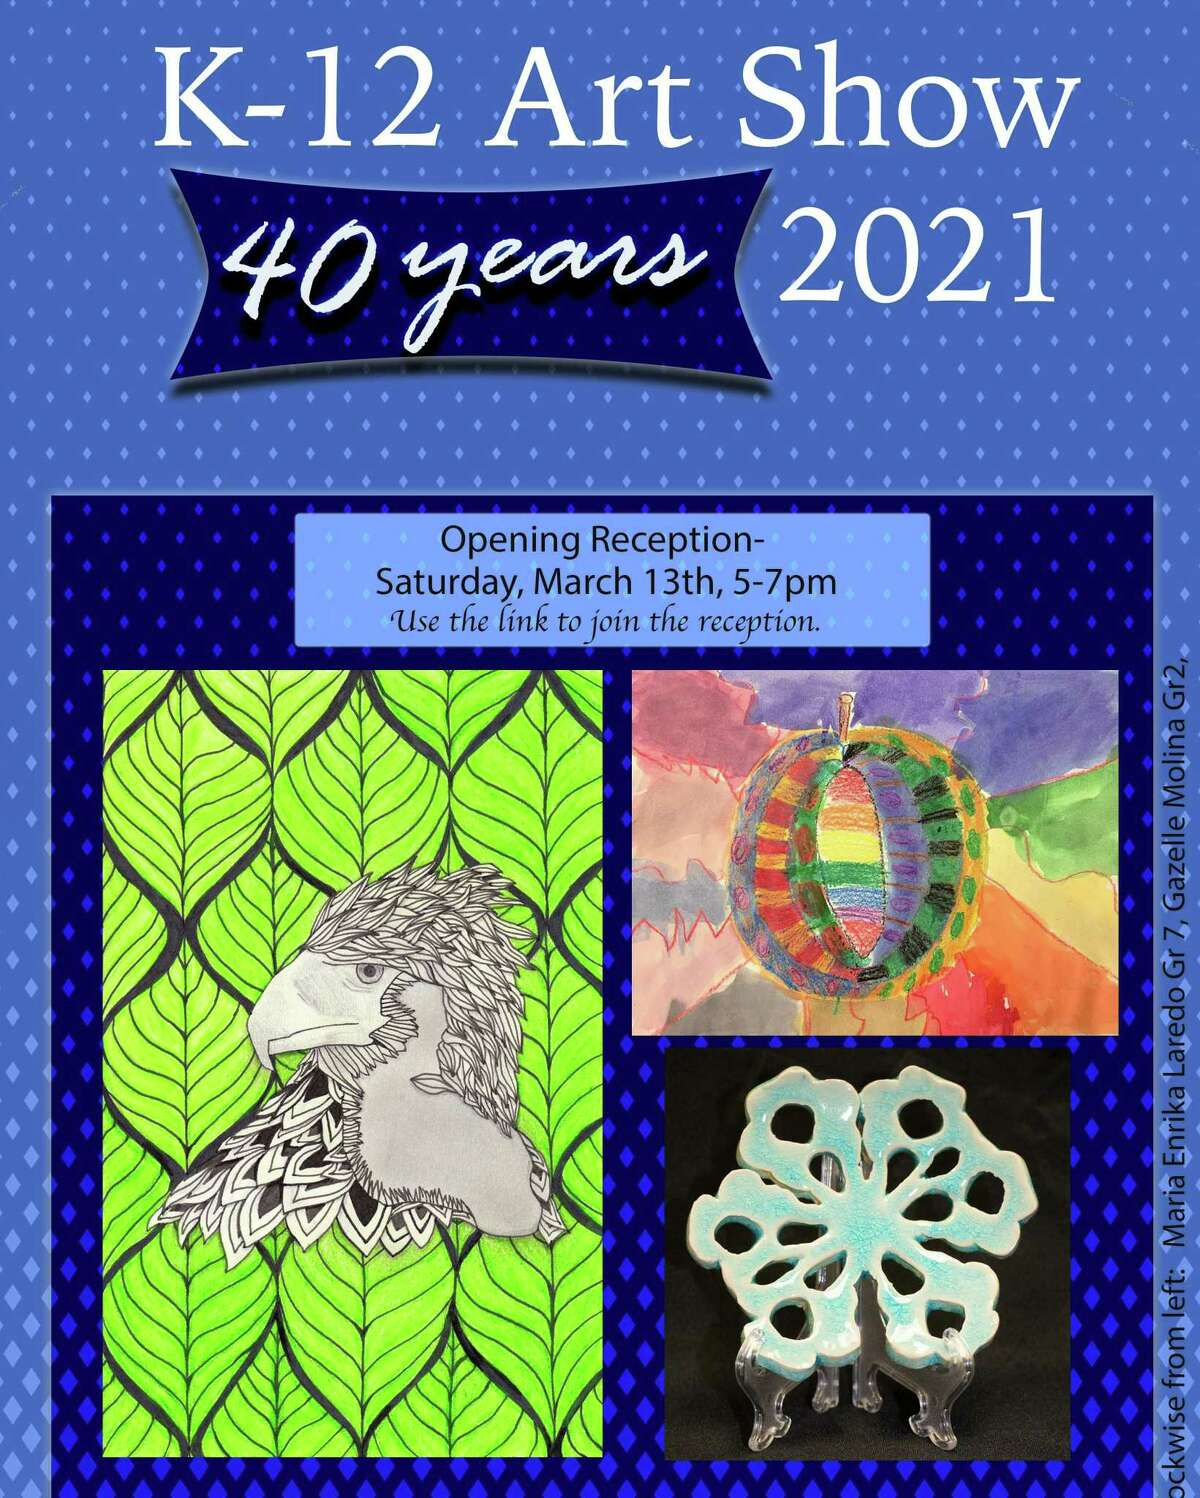 Middletown Public Schools will host its 40th annual K-12 art show with a virtual reception March 13 from 5 to 7 p.m.